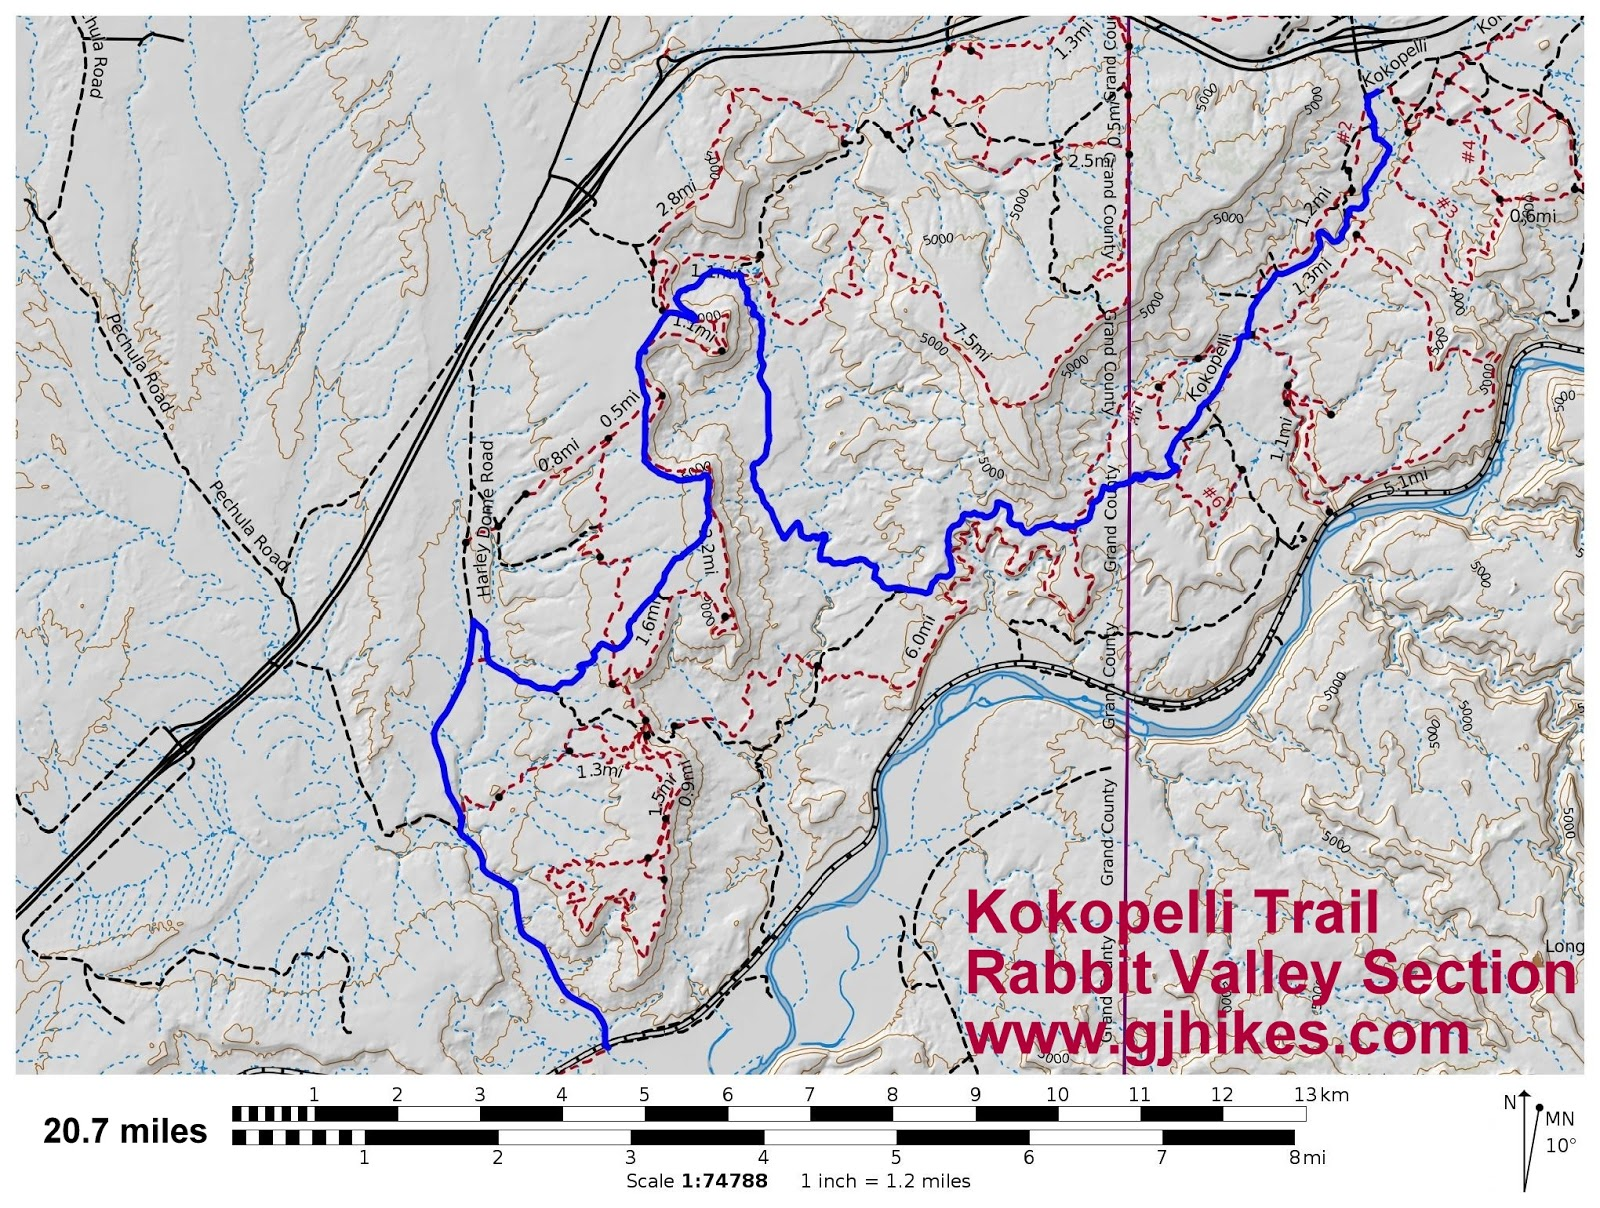 gjhikes.com: Kokopelli - Rabbit Valley Section on legacy trail map, manti-la sal national forest map, elizabeth furnace recreation area trail map, phil's trail map, american discovery trail map, mee canyon map, independence trail map, cowboy trail map, hole in the rock trail map, loon trail map, phoenix trail map, buffalo trail map, great divide trail map, white rock lake trail map, deep creek trail map, colorado forest service trail map, bear creek trail map, las vegas bike trail map, rabbit valley map, lunch loops trail map,